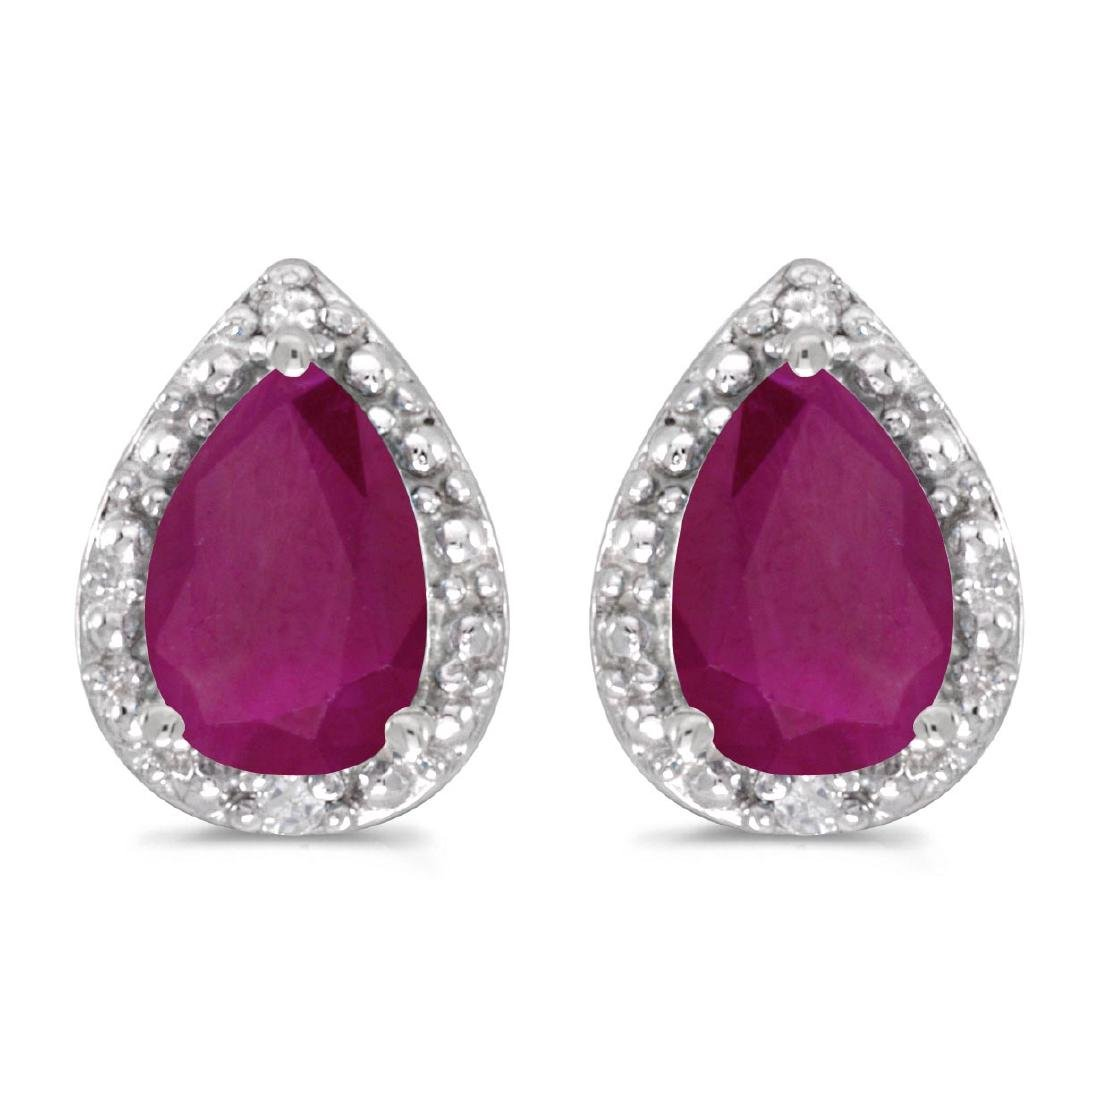 Certified 10k White Gold Pear Ruby And Diamond Earrings